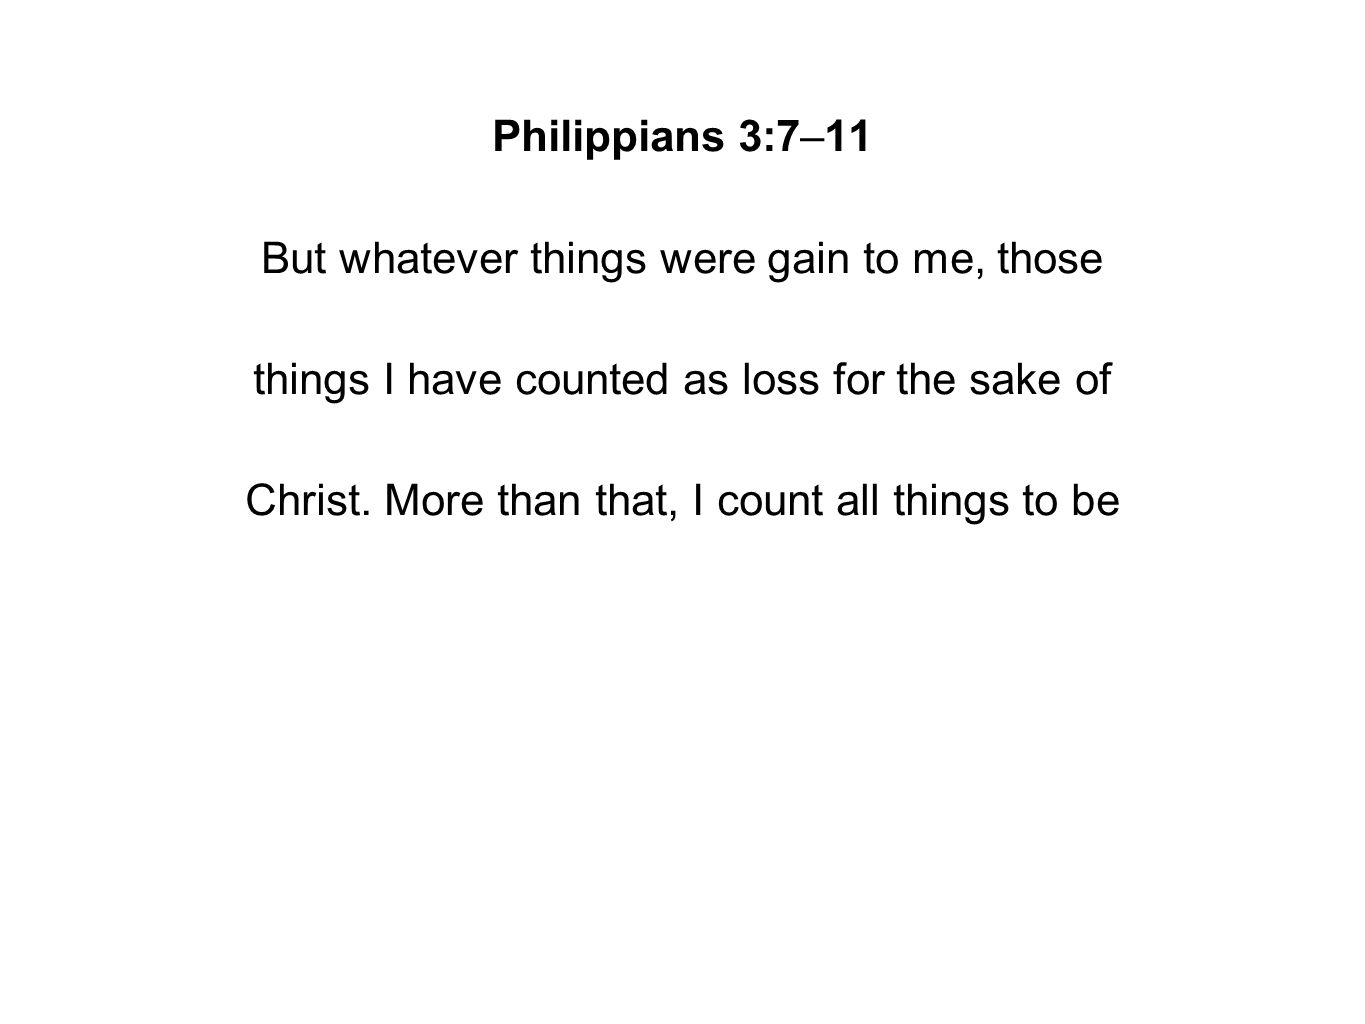 Philippians 3:7–11 But whatever things were gain to me, those things I have counted as loss for the sake of Christ.